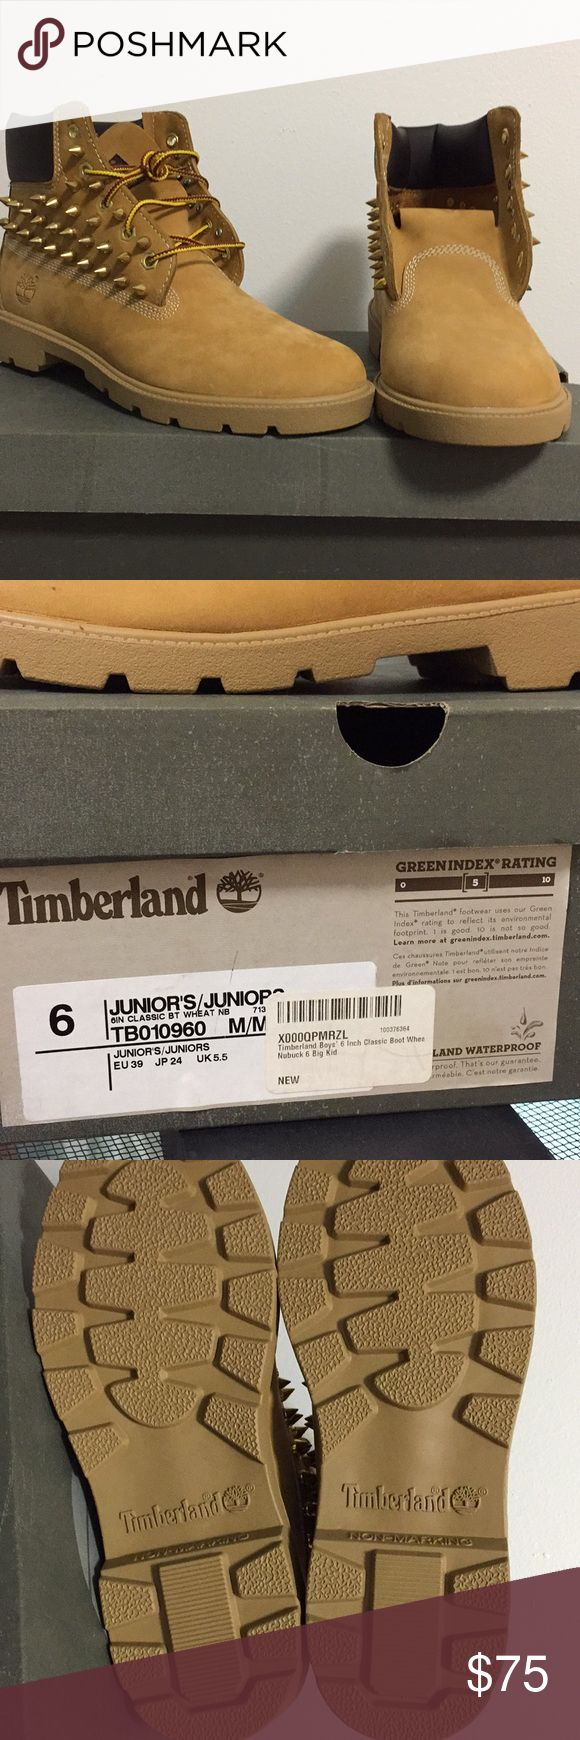 Spiked Timberland Boots New in Box Custom gold spiked timberland boots   Juniors Size 6 6 inch Classic Boot Wheat Timberland Shoes Boots